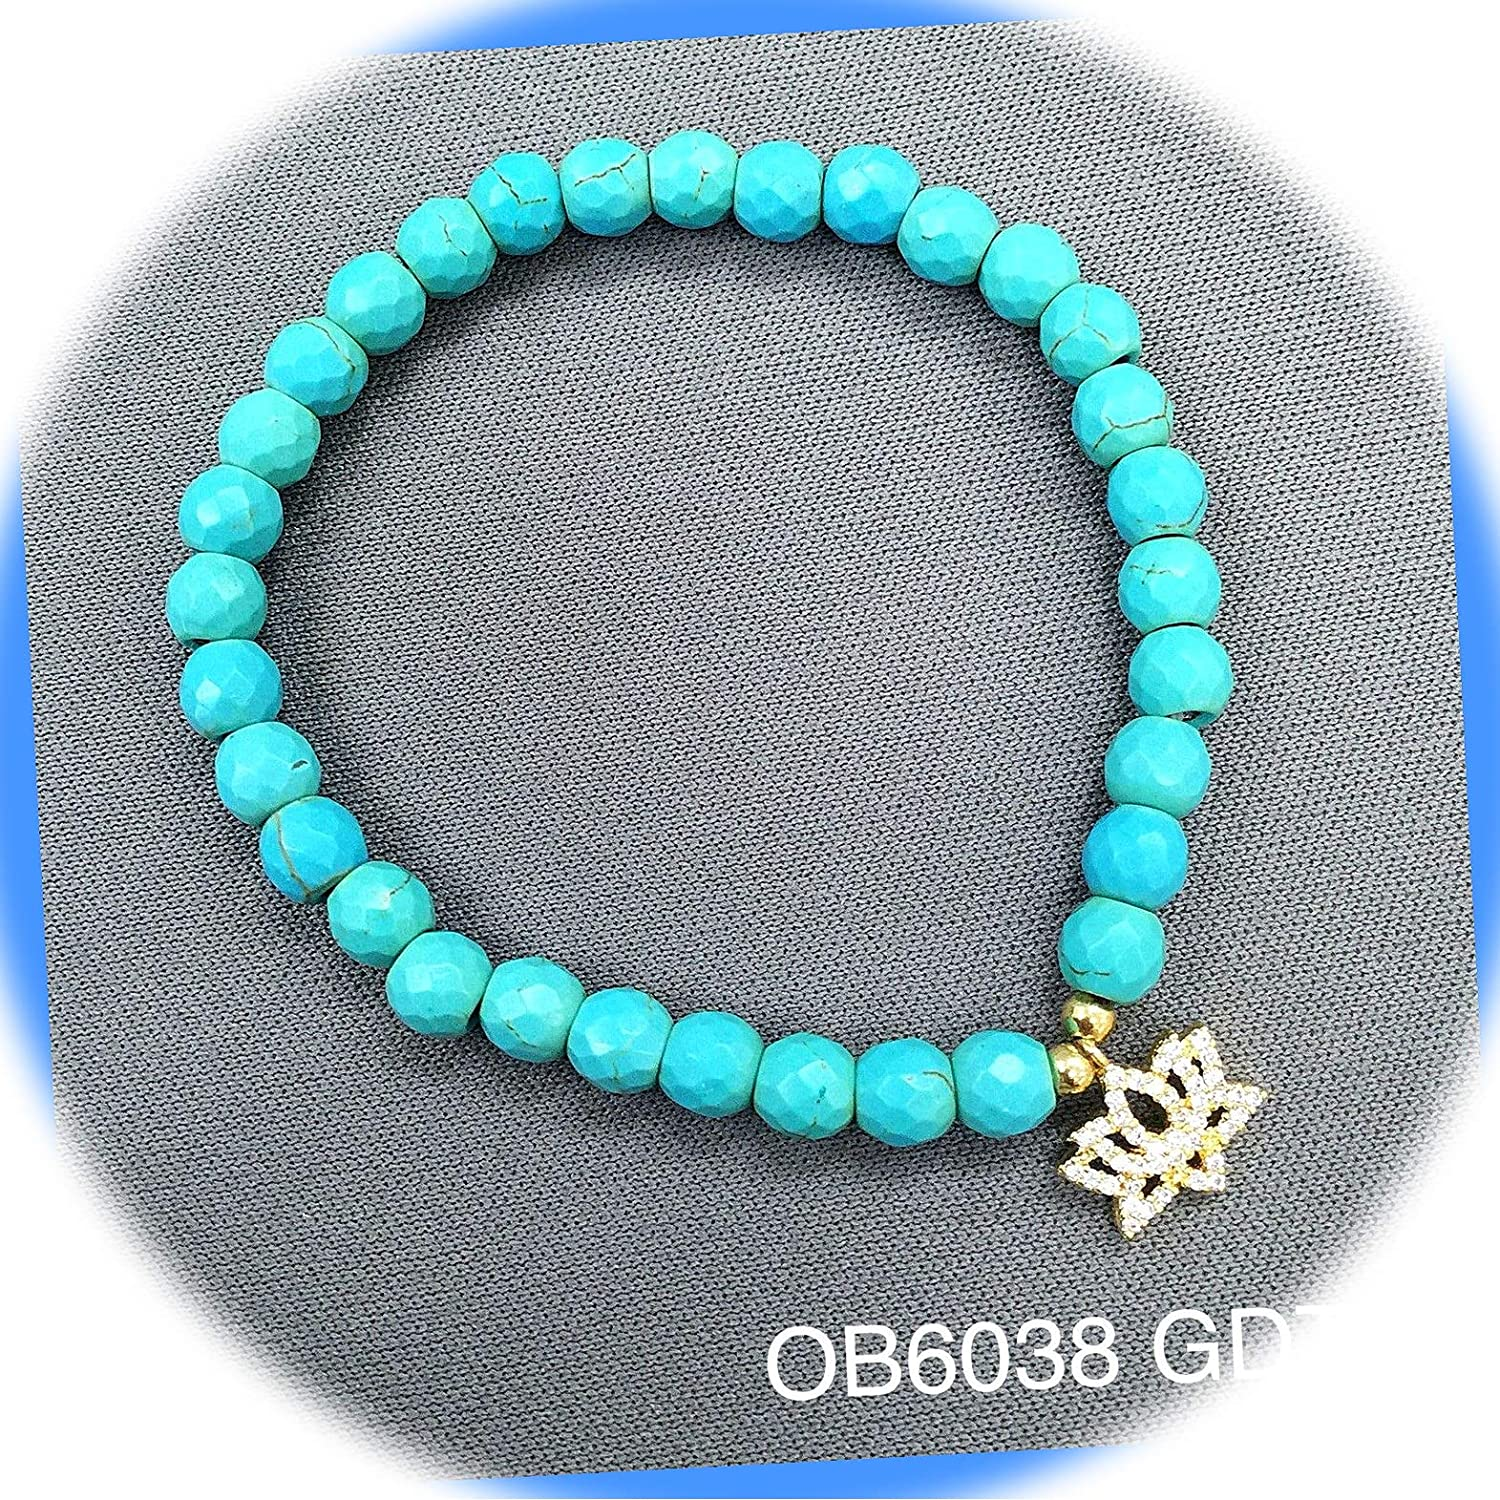 New Regular discount Turquoise Beaded Semi-Precious Cubic Charm Zirconia Str Lily Max 75% OFF